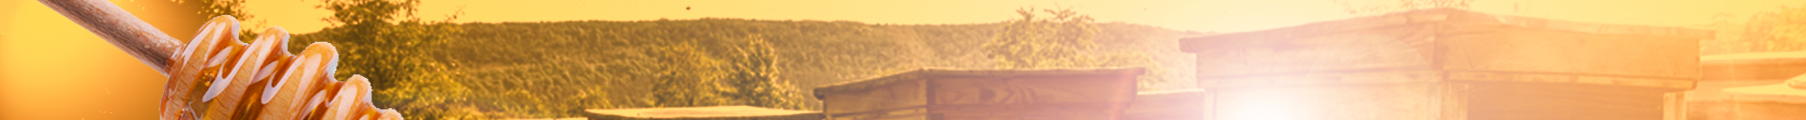 banner miere 120px